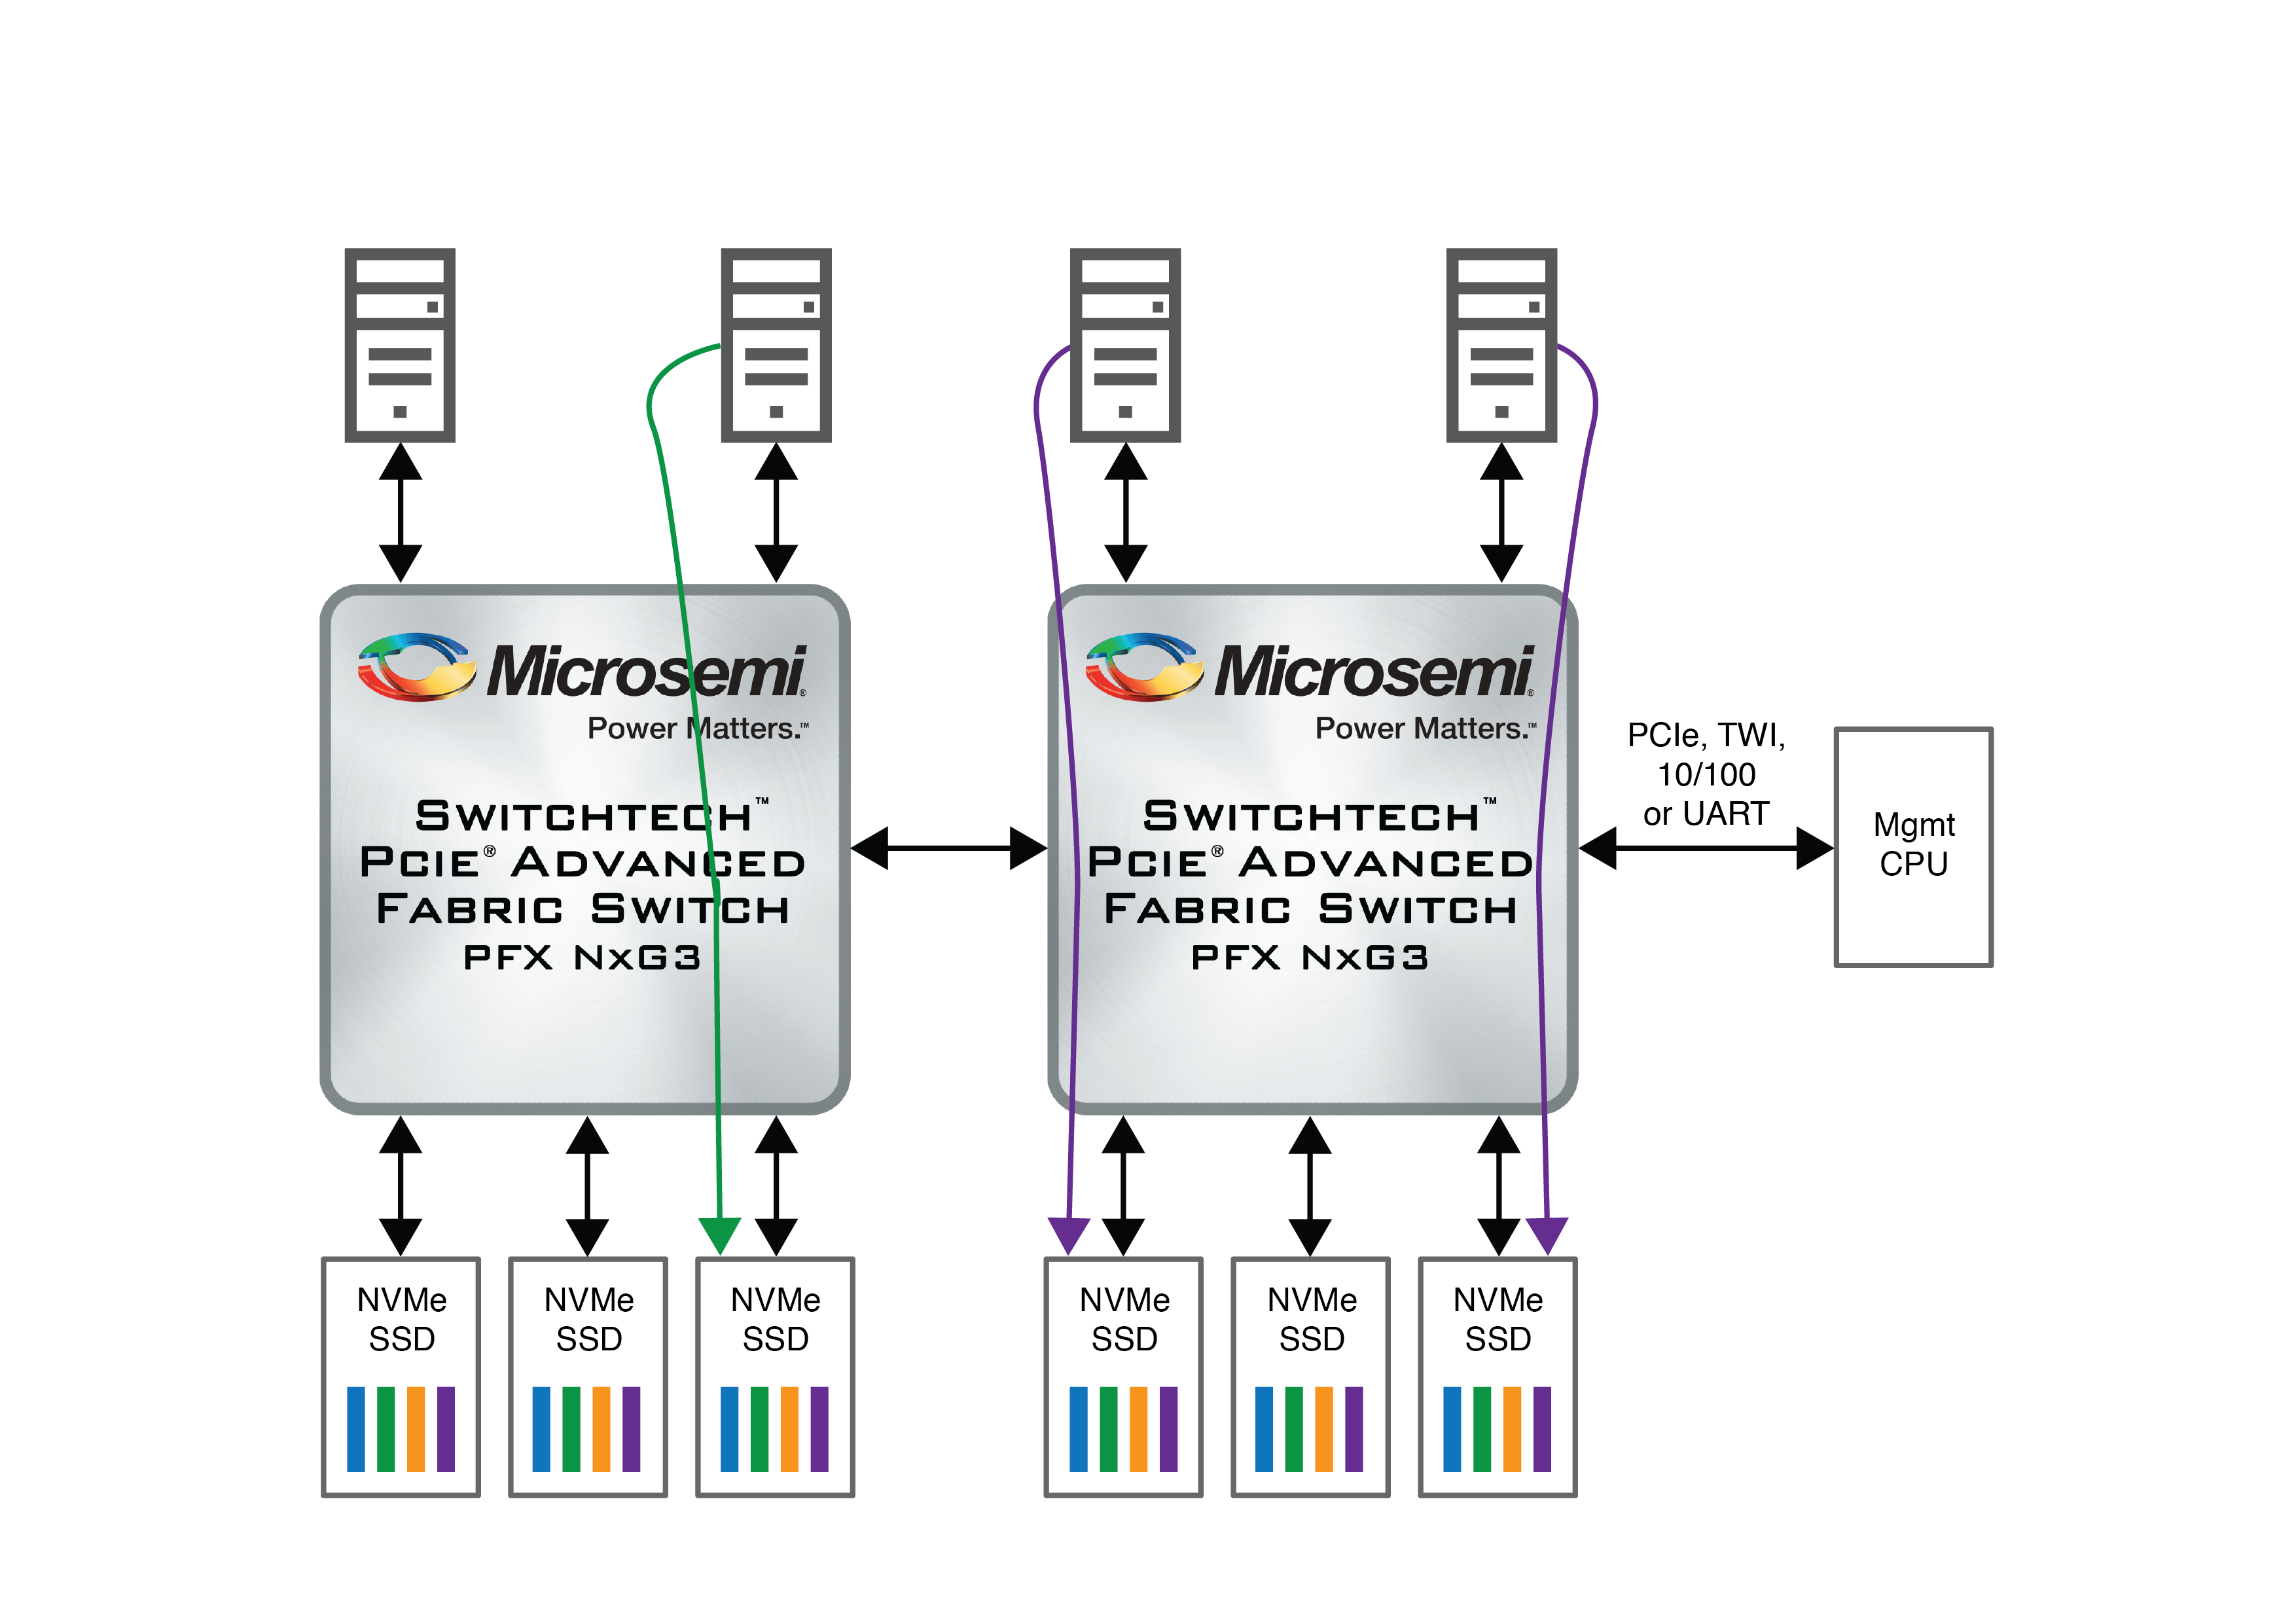 Microsemi's Switchtec PAX Gen3 Advanced Fabric PCIe Switch Interoperability with SR-IOV Solid State Drives